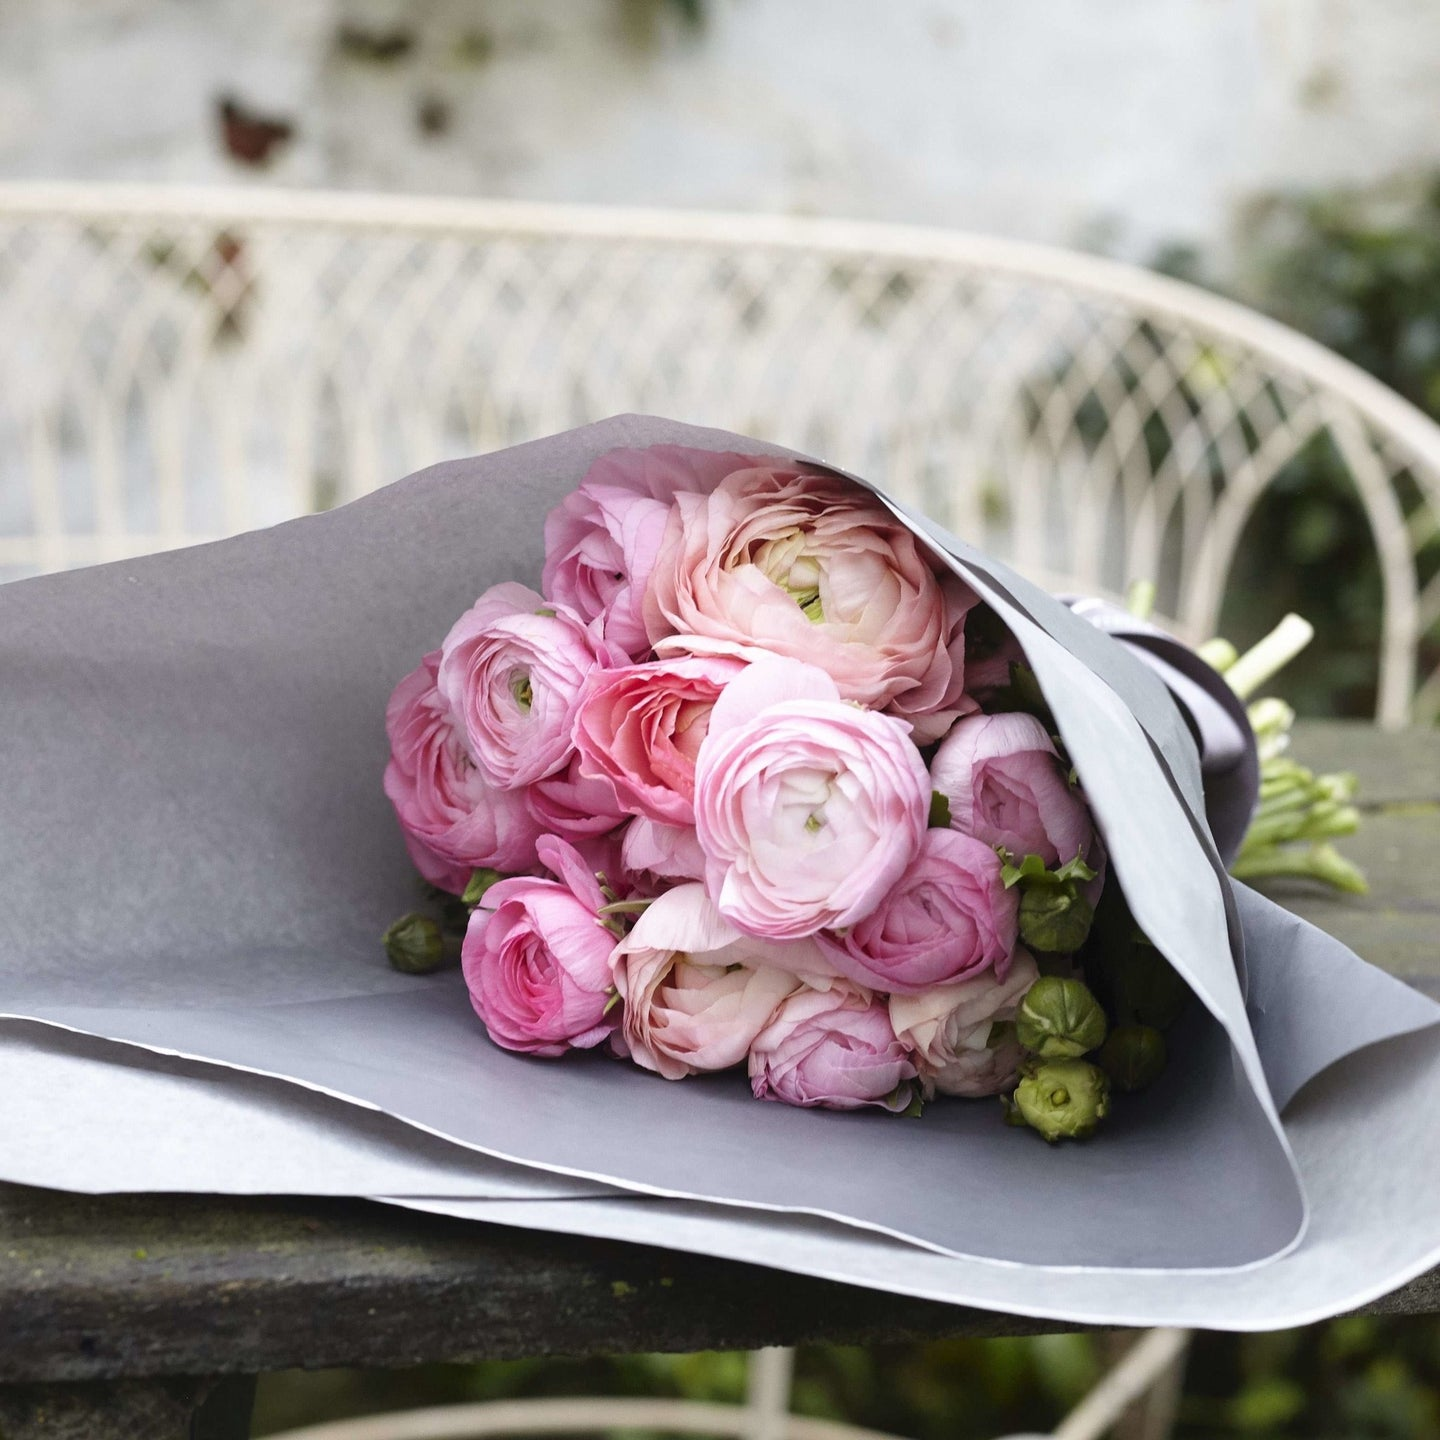 Wrap of the Season's Best - Lucy Vail Floristry